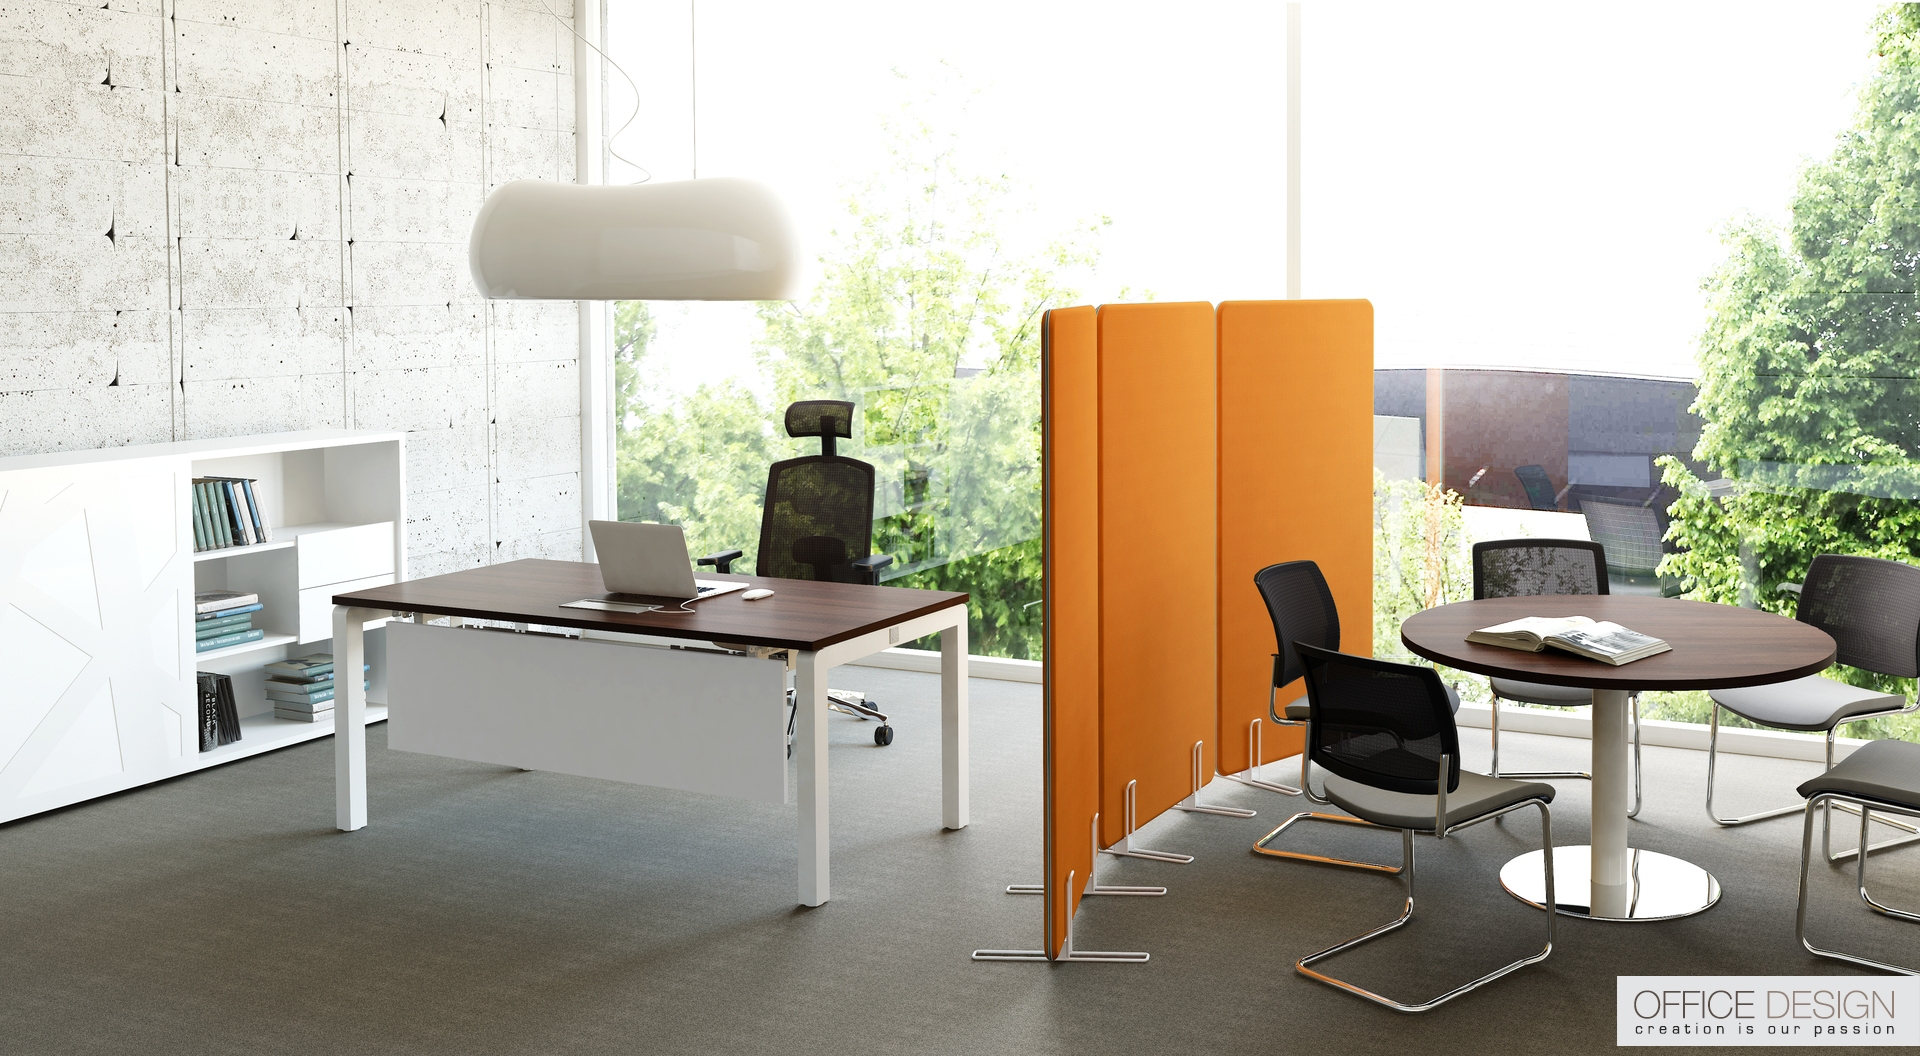 Chair By Eggib 173145 in addition 93027548526301116 besides Peltoncrane further Misc additionally . on office chairs